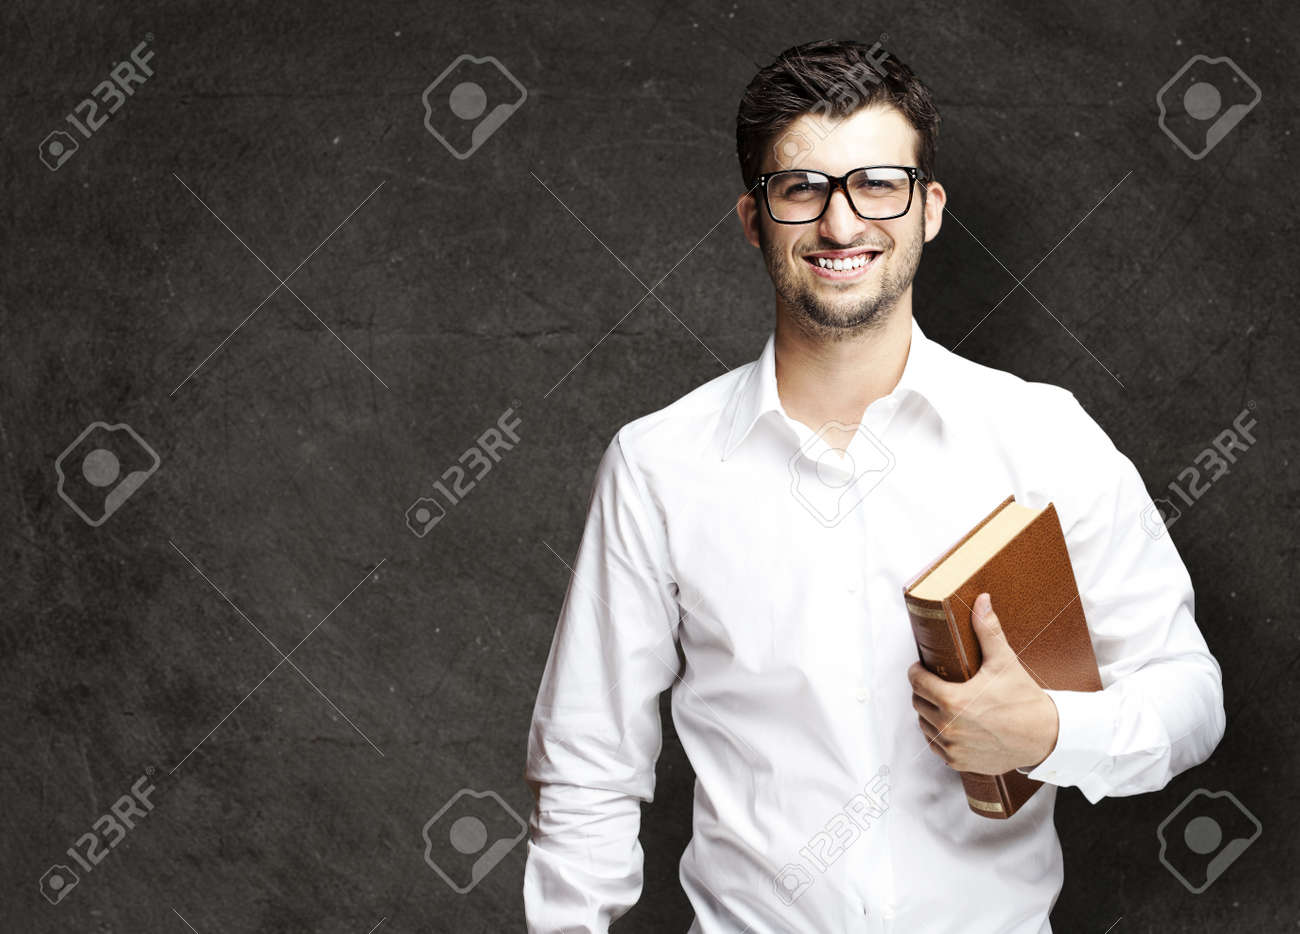 portrait of young student holding books against a grunge background Stock Photo - 12105206